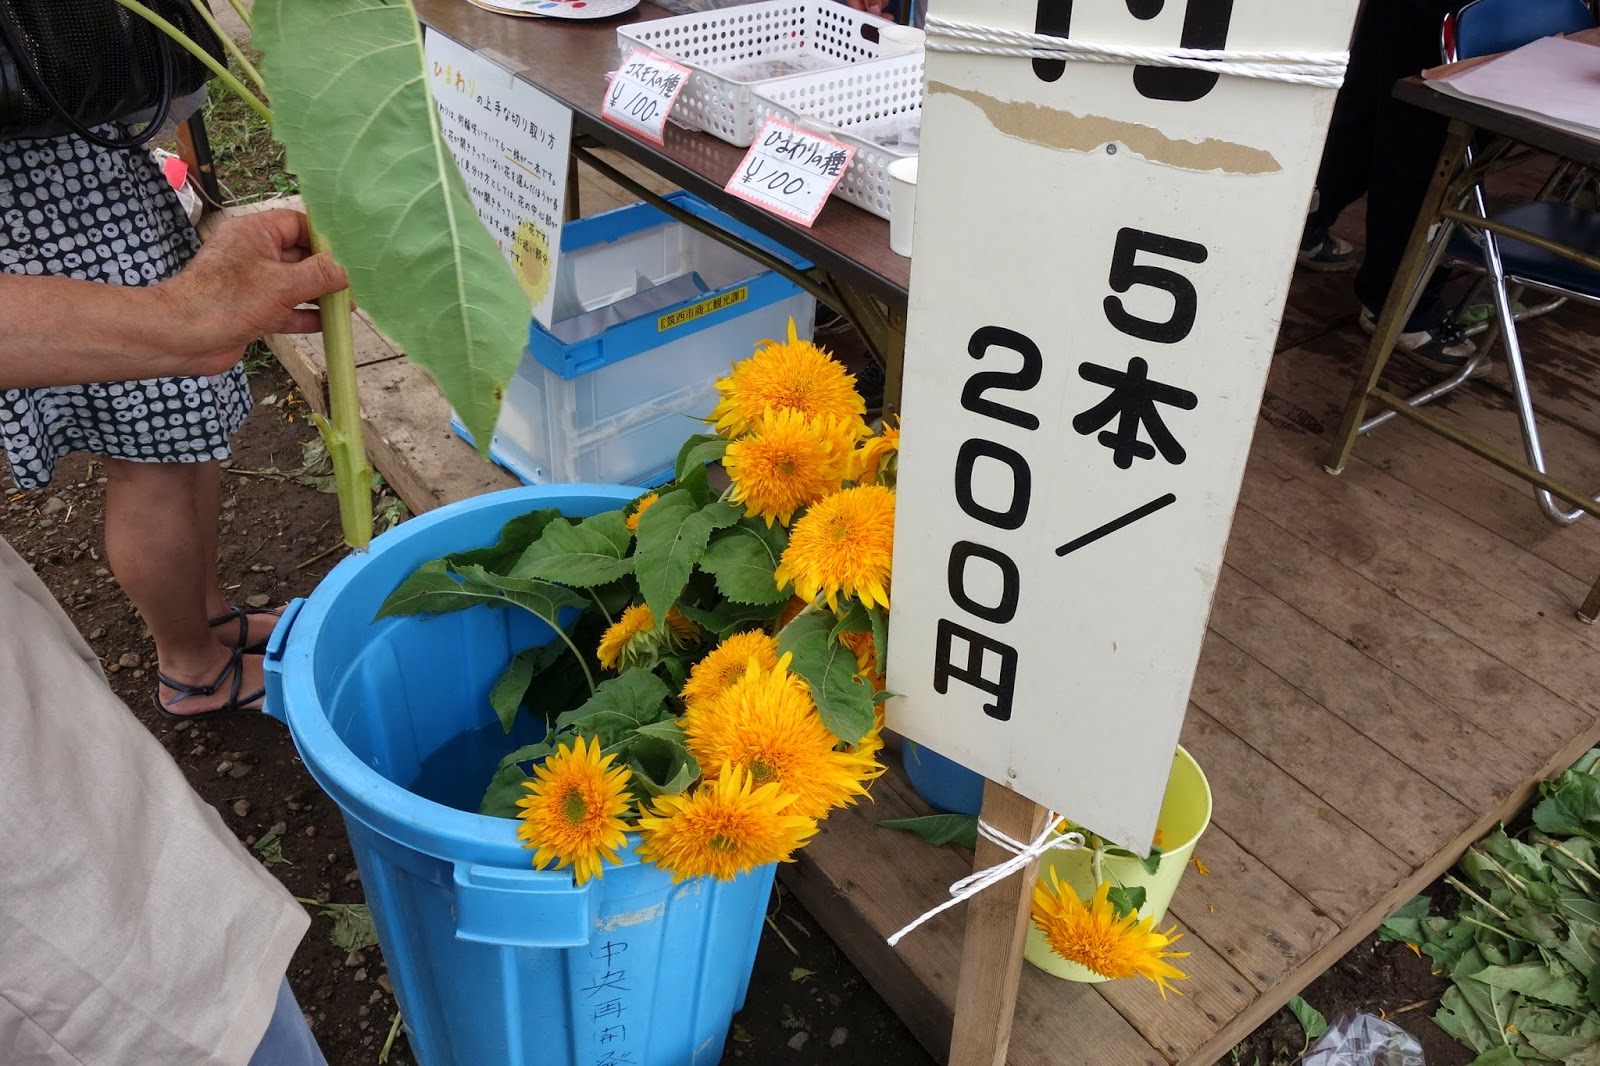 Sunflower Festival at Ibaraki chikusei tohoku yae japan